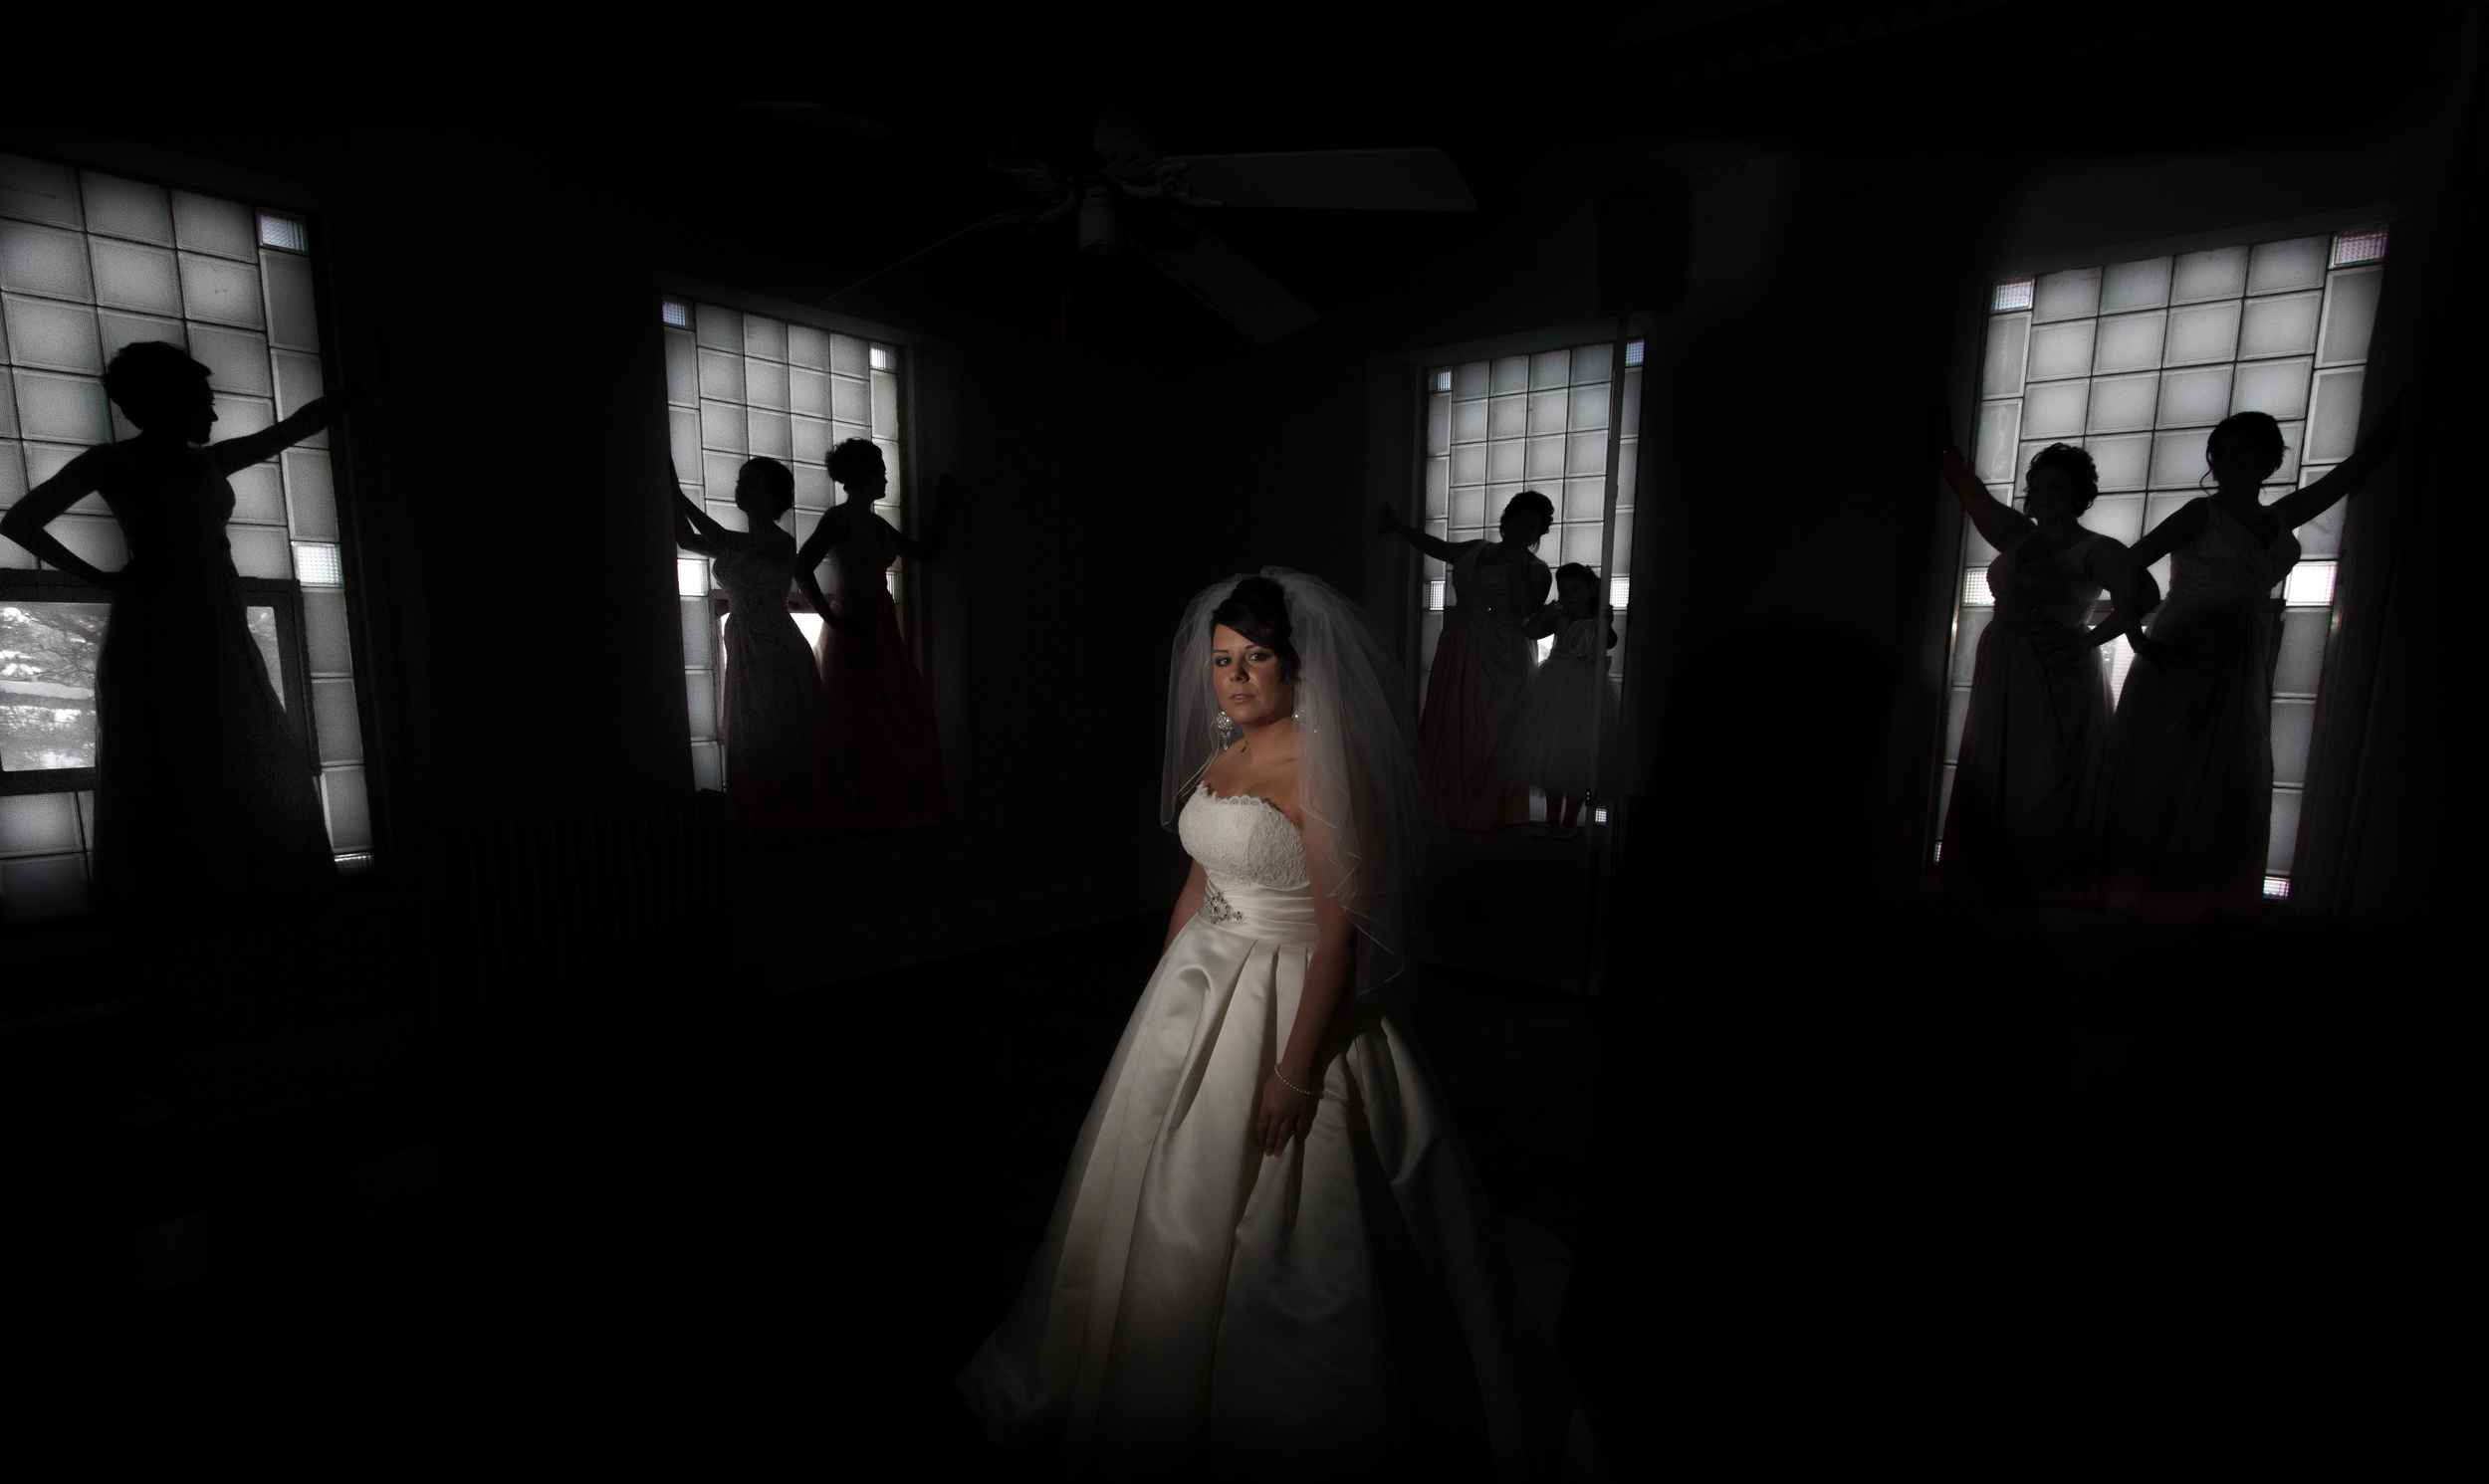 Caitlyn (Morris) Meitner poses prior to her wedding as herbridesmaidsstrike a pose, silhouetted against the windows of an old classroom.